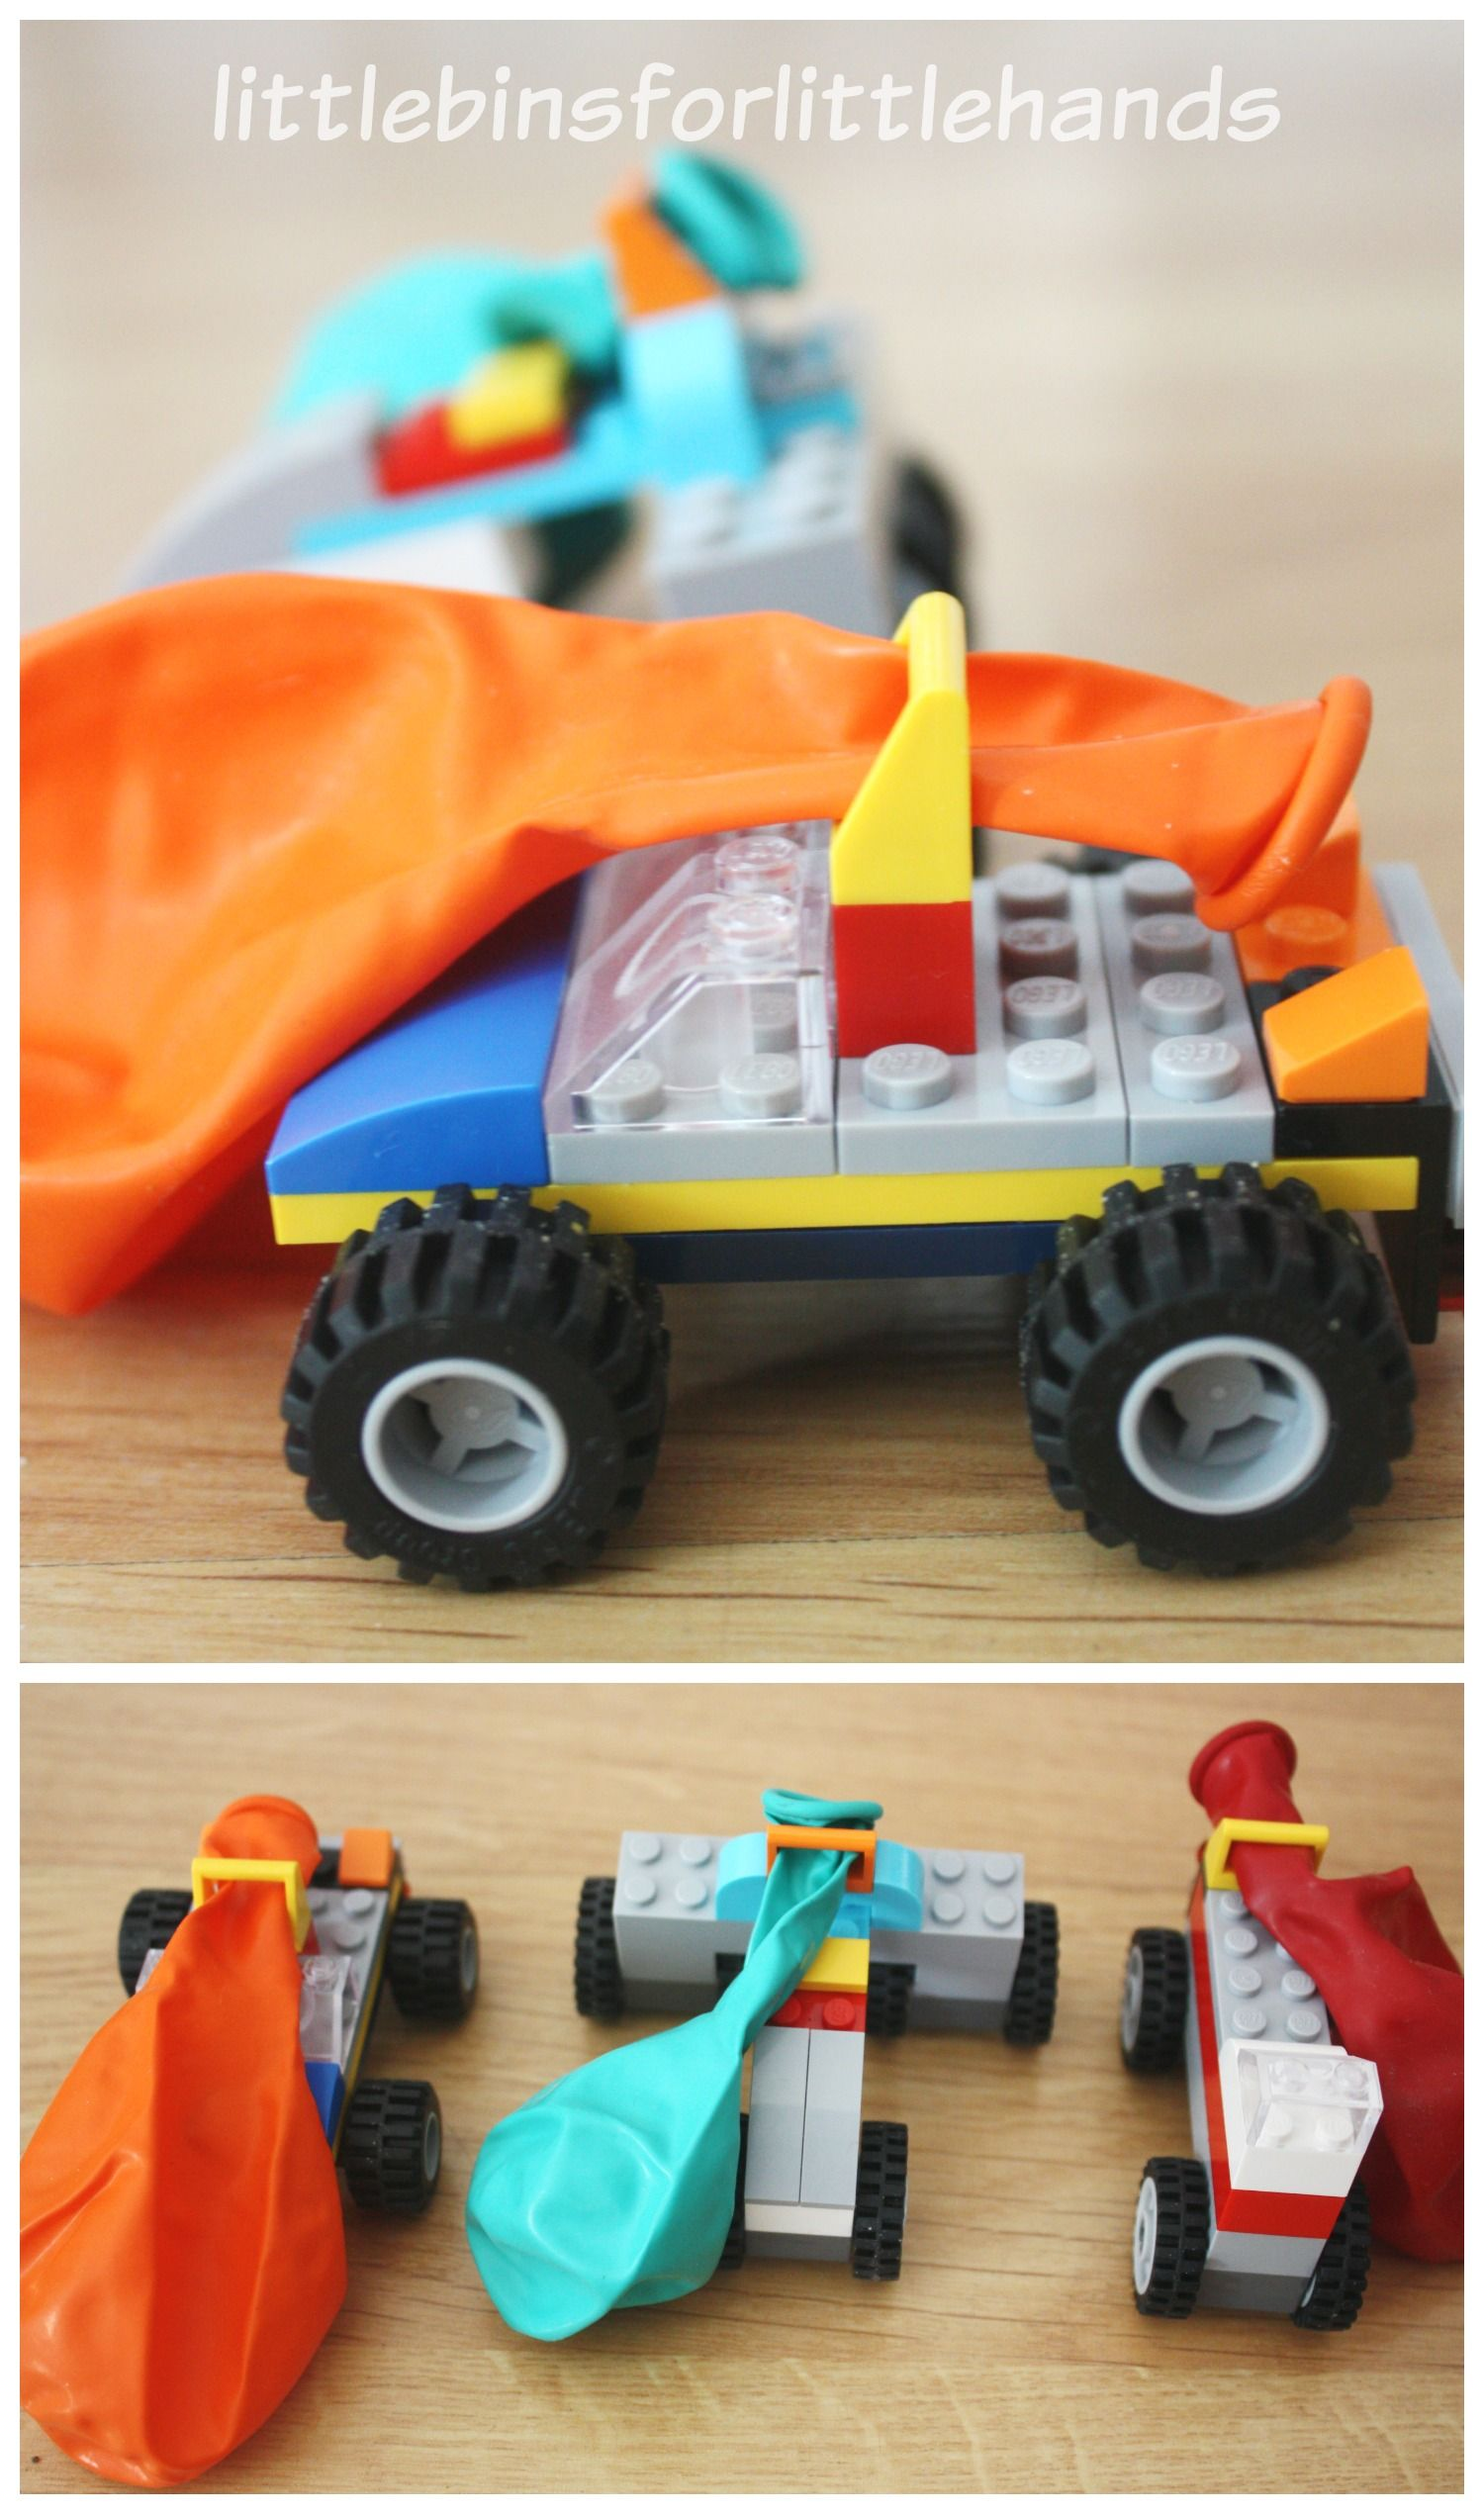 LEGO Balloon Car DIY Lego Building Kit STEM Activity - Lego ...